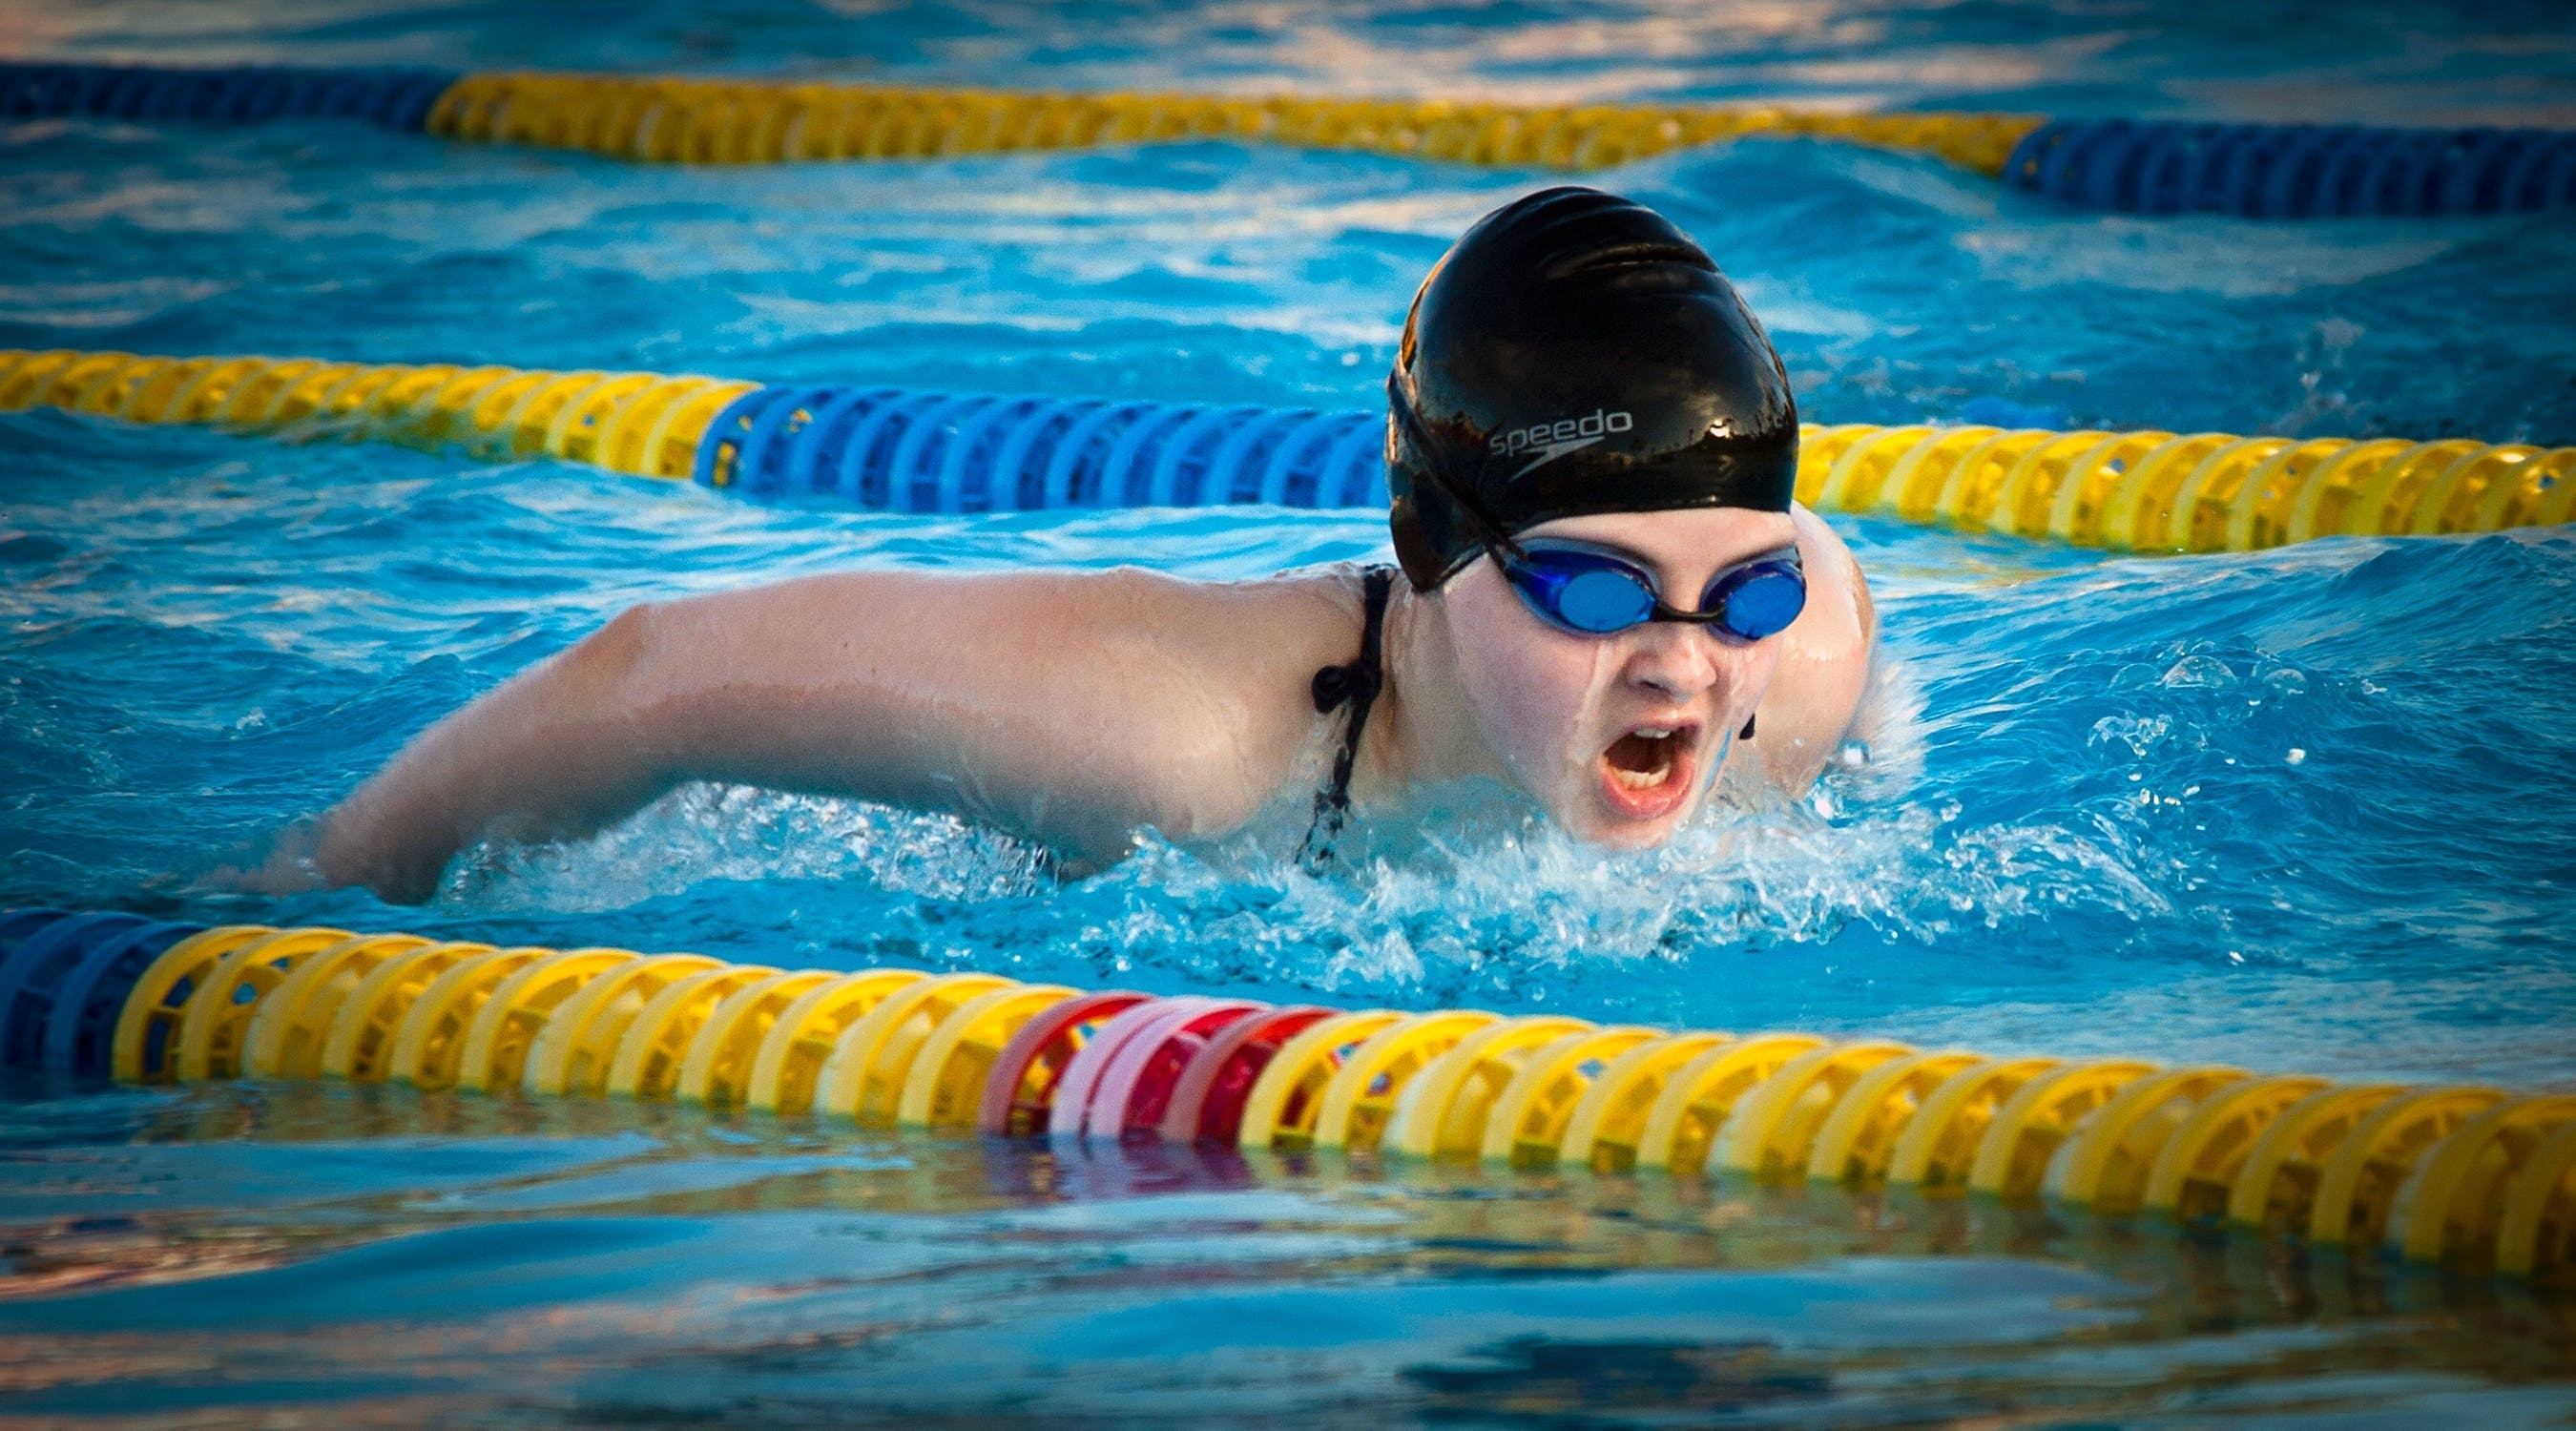 Woman Wearing Goggles Swimming on Pool